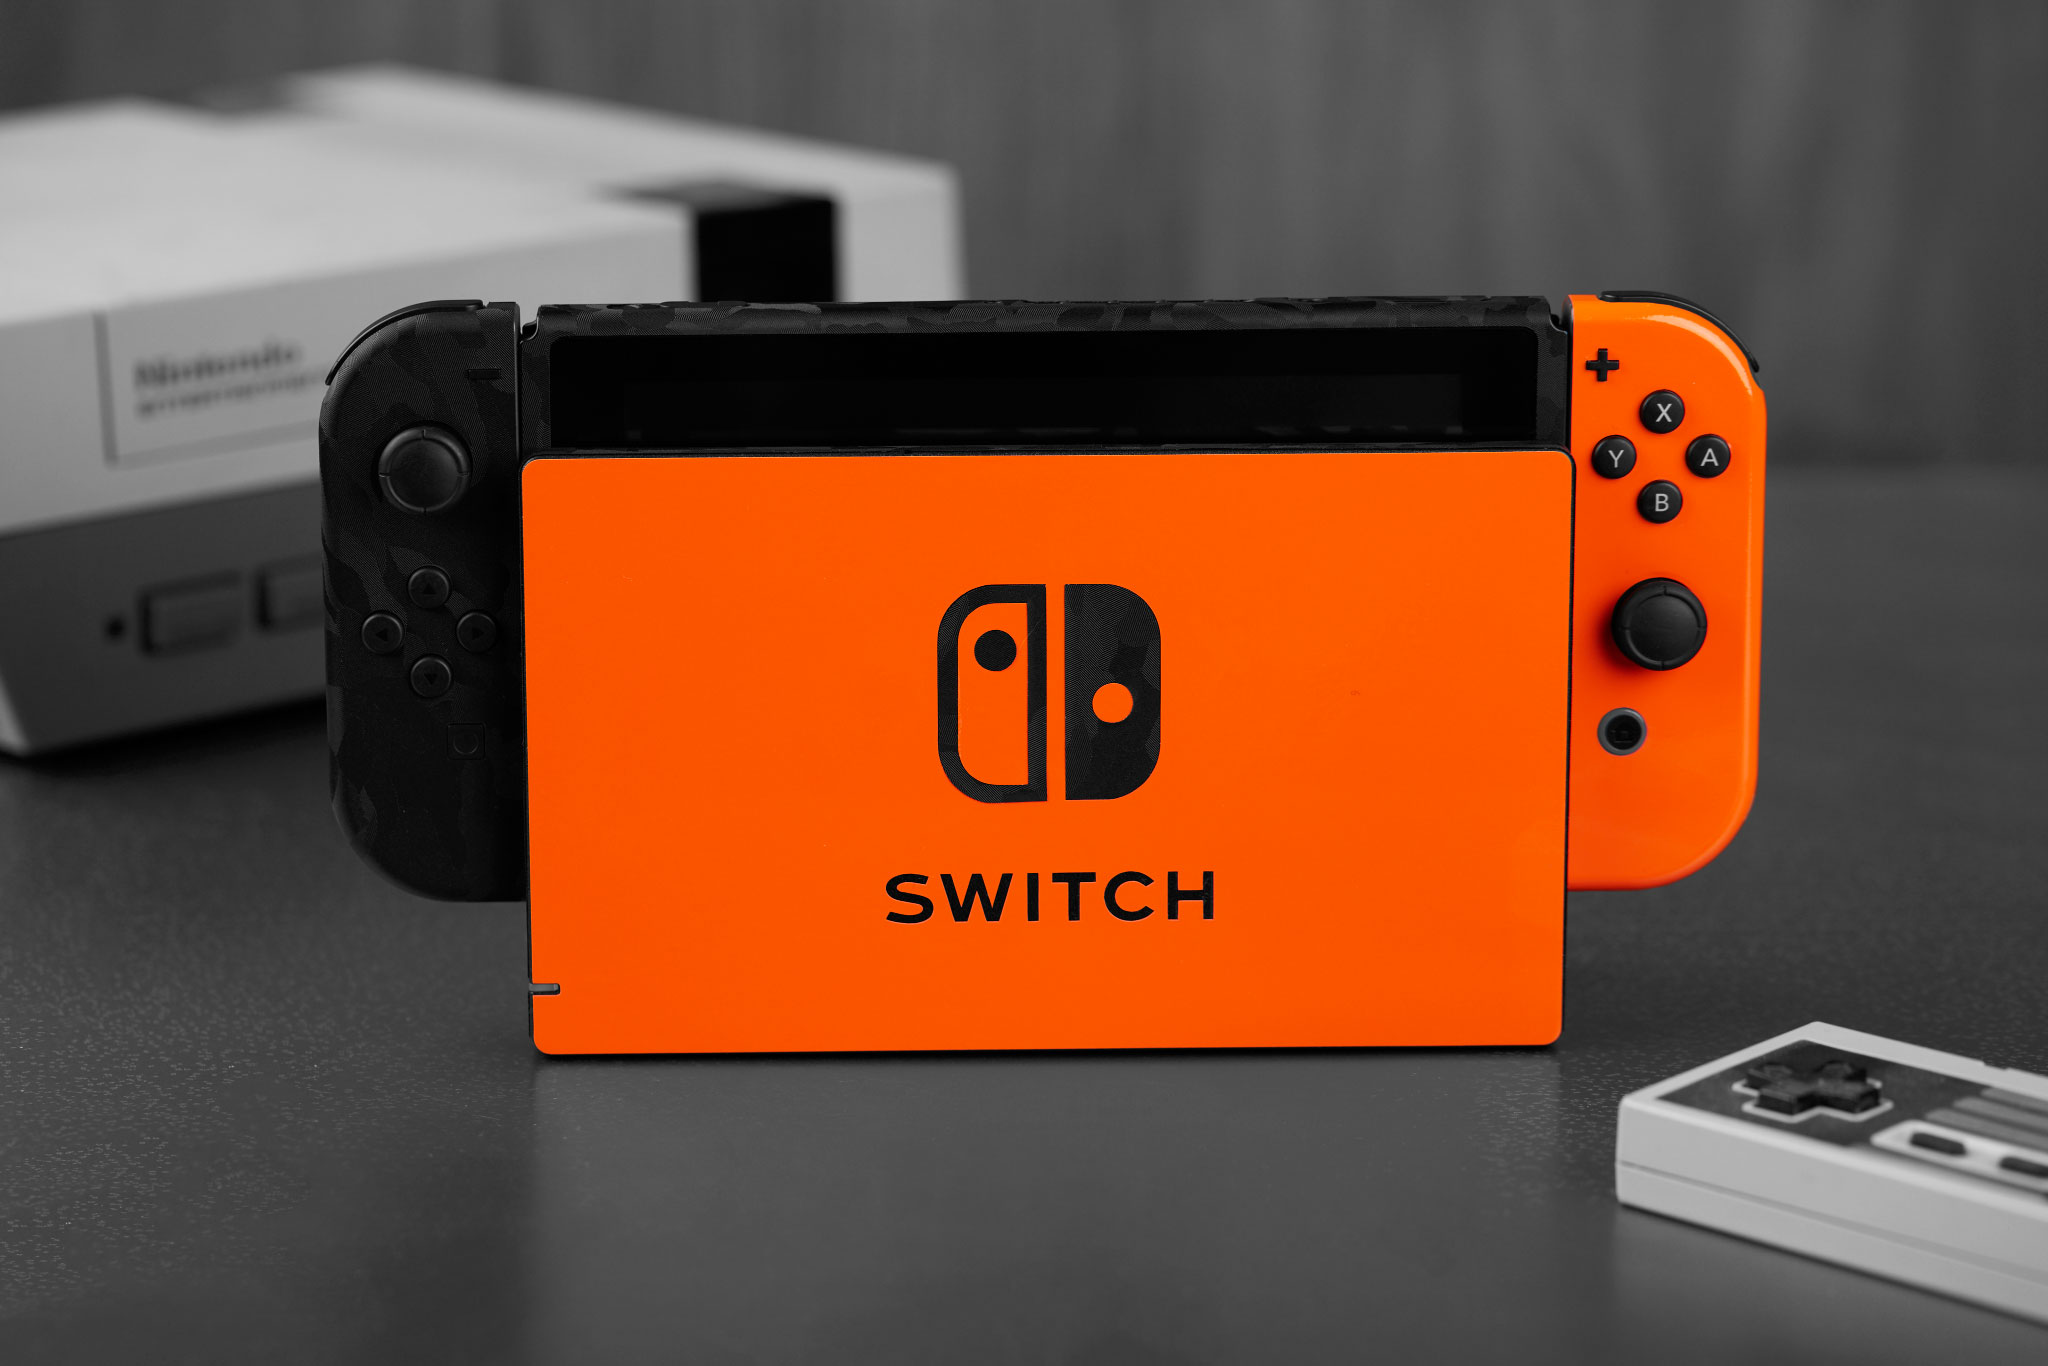 You can finally customize your Nintendo Switch without any